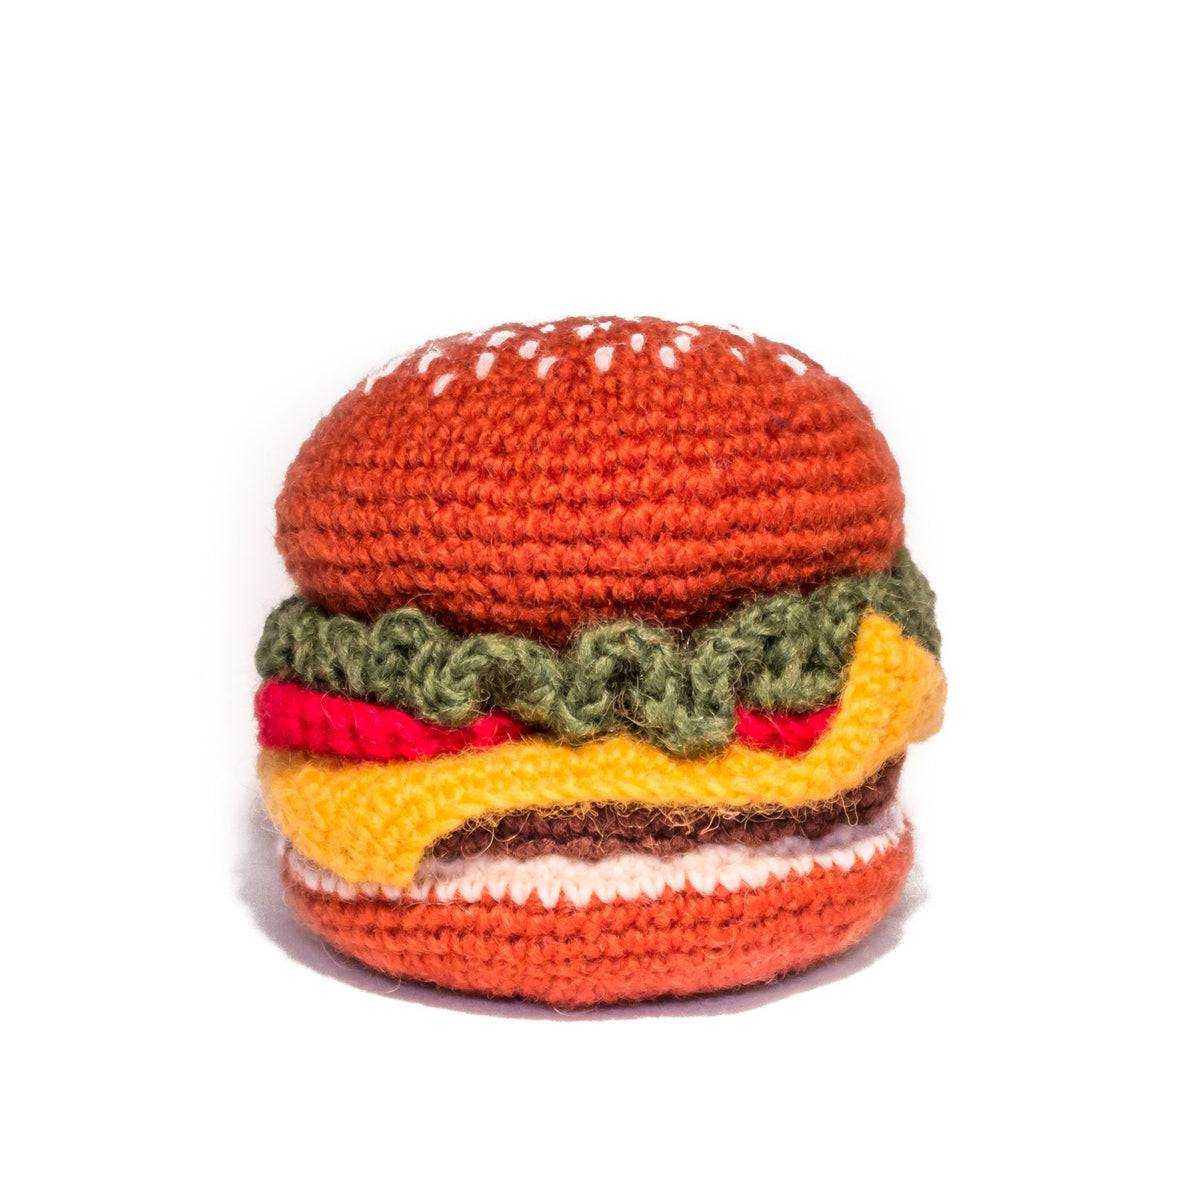 Hand Knit Hamburger Dog Toy